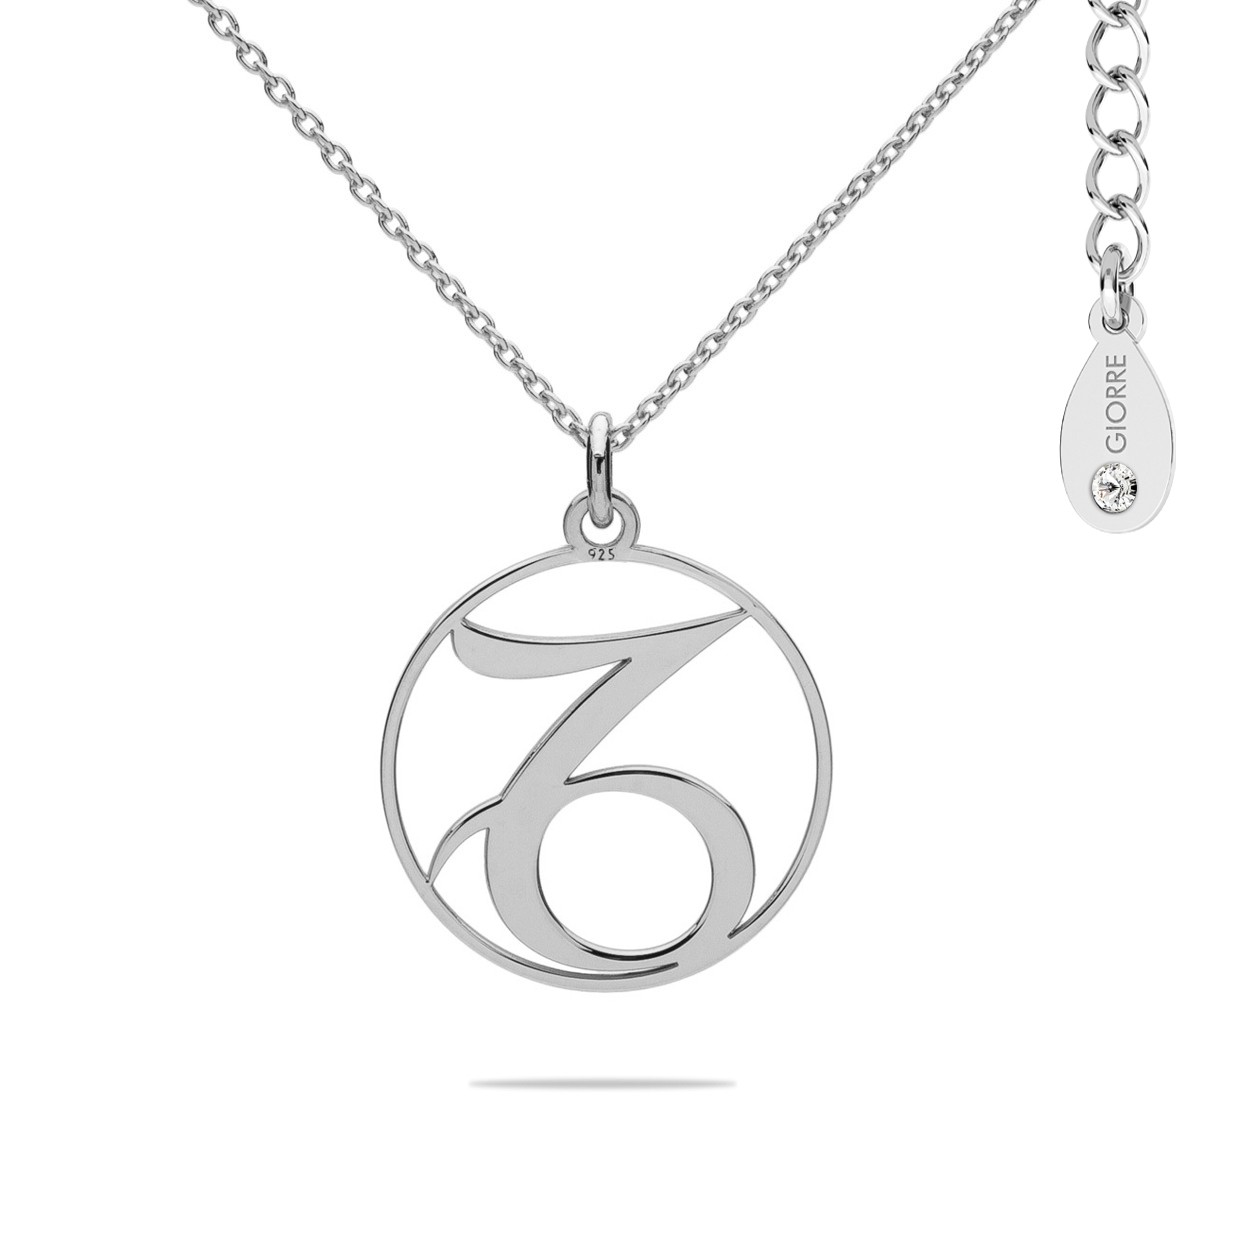 CAPRICORN zodiac sign necklace with Swarovski Crystals sterling silver 925